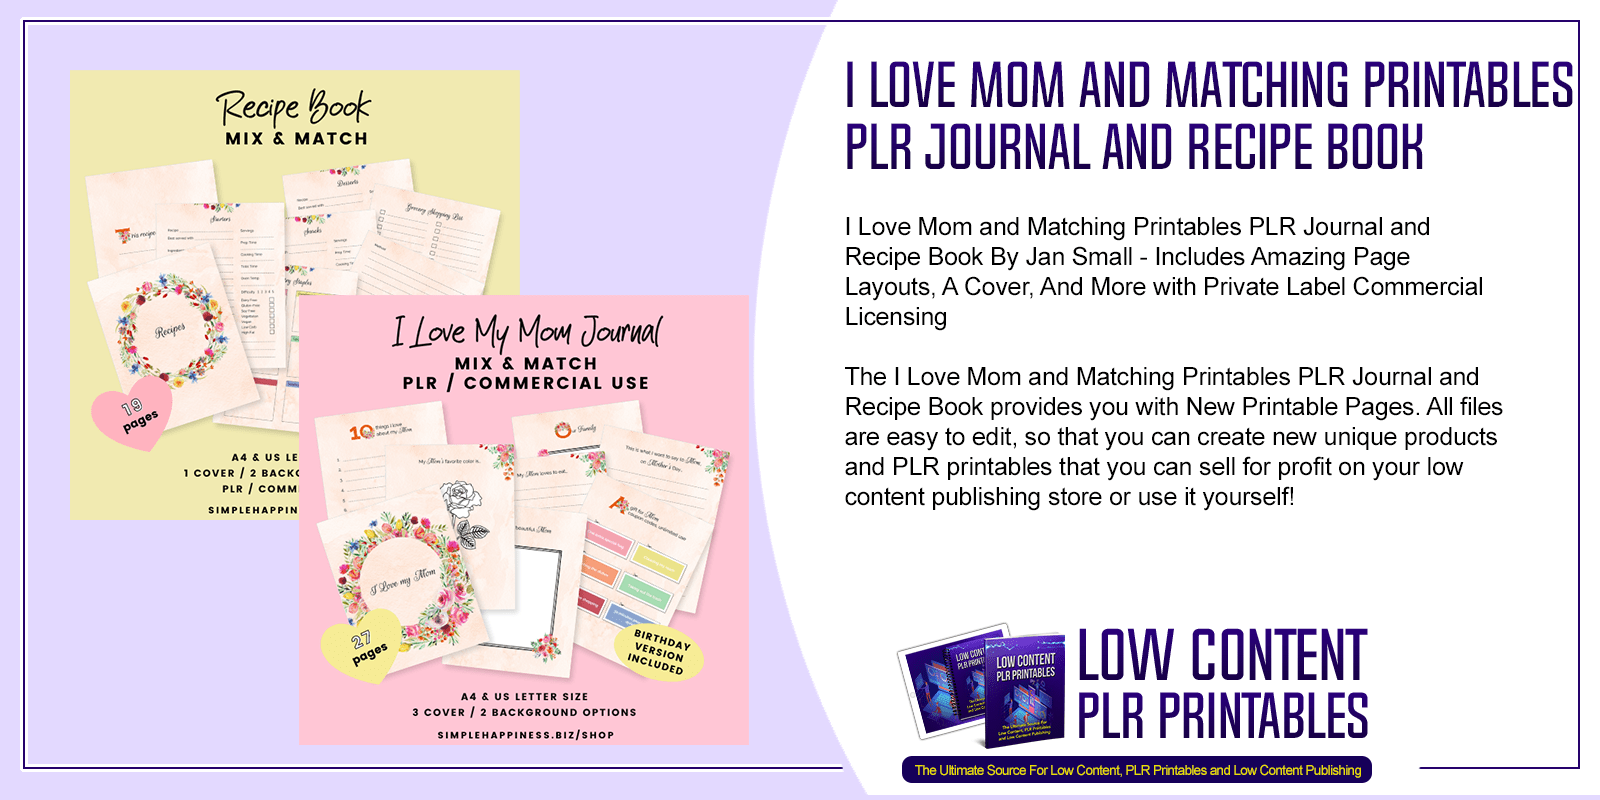 I Love Mom and Matching Printables PLR Journal and Recipe Book